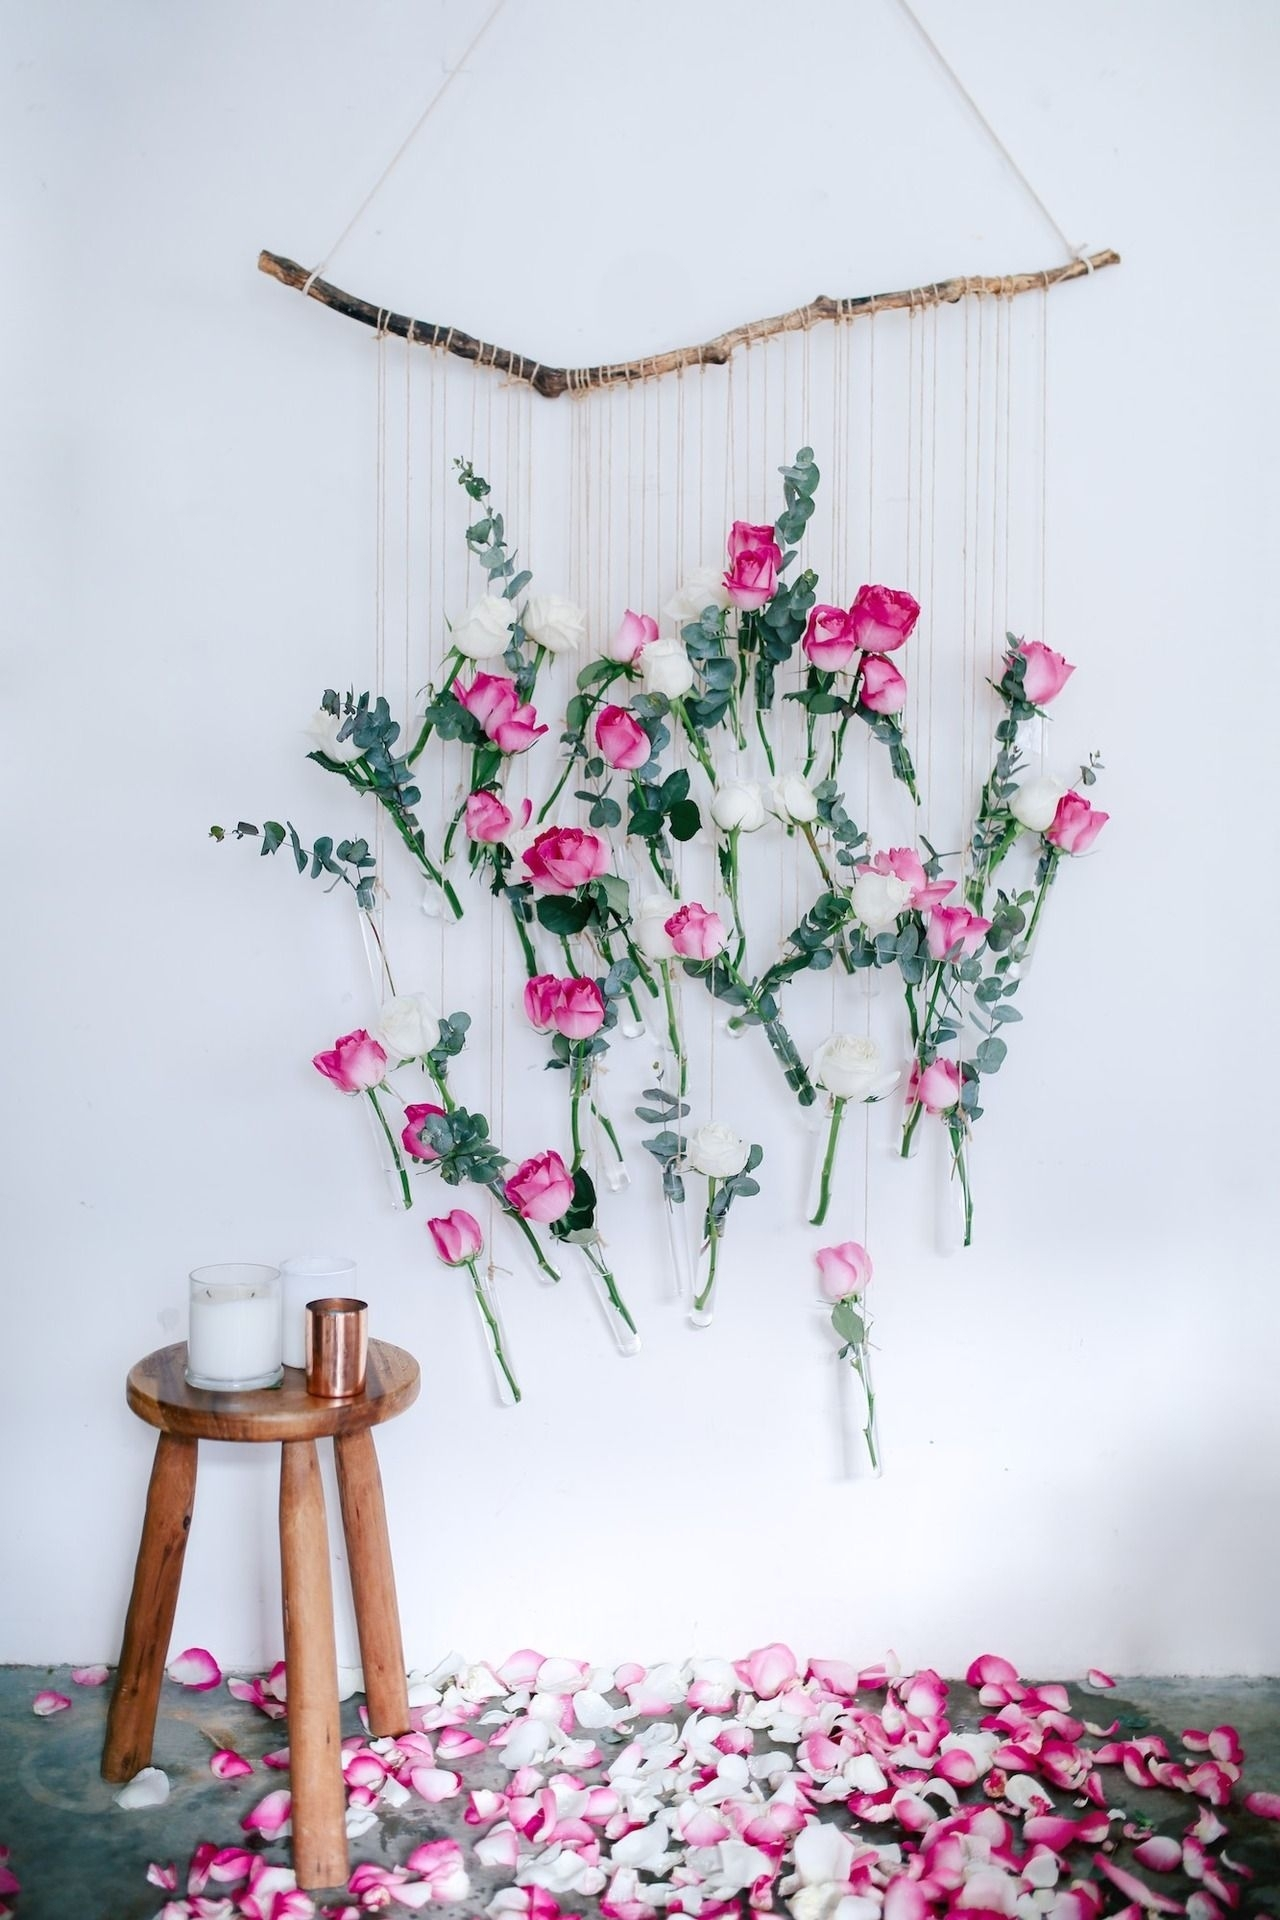 Diy Floral Vase Wall Hanging (Using Rose And Eucalyptus!) | Blog Throughout Current Flowers Wall Accents (Gallery 1 of 15)